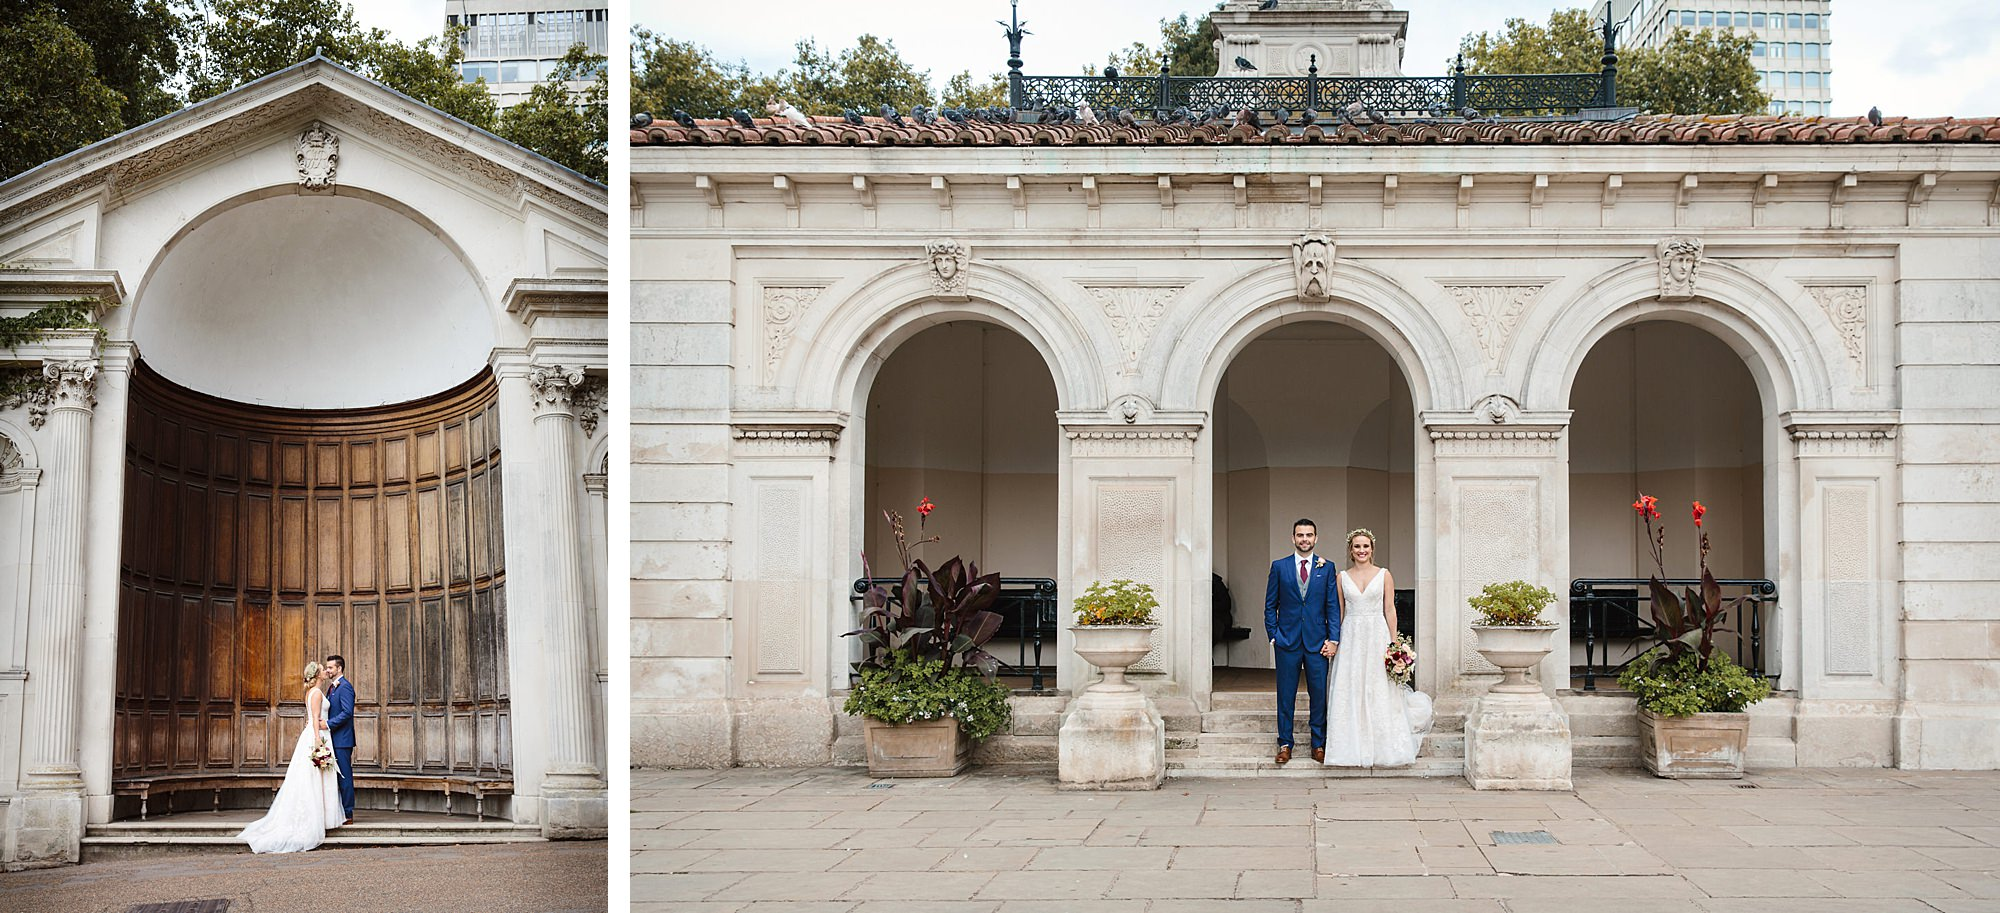 bride and groom in pump house at italian gardens